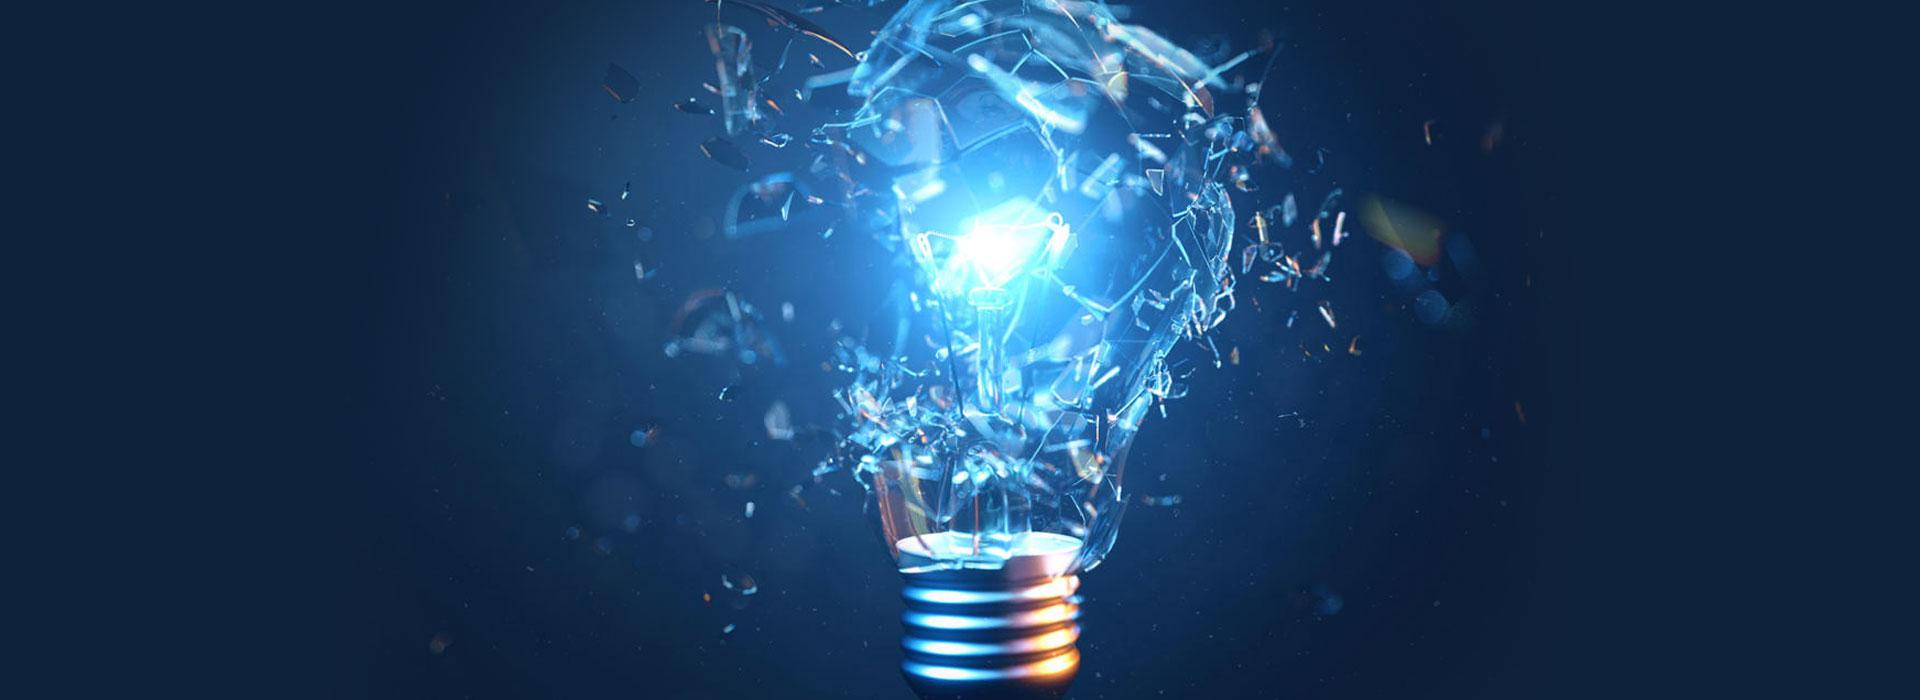 Slideshow - Shatter your Energy Paradigm - Blue Bulb